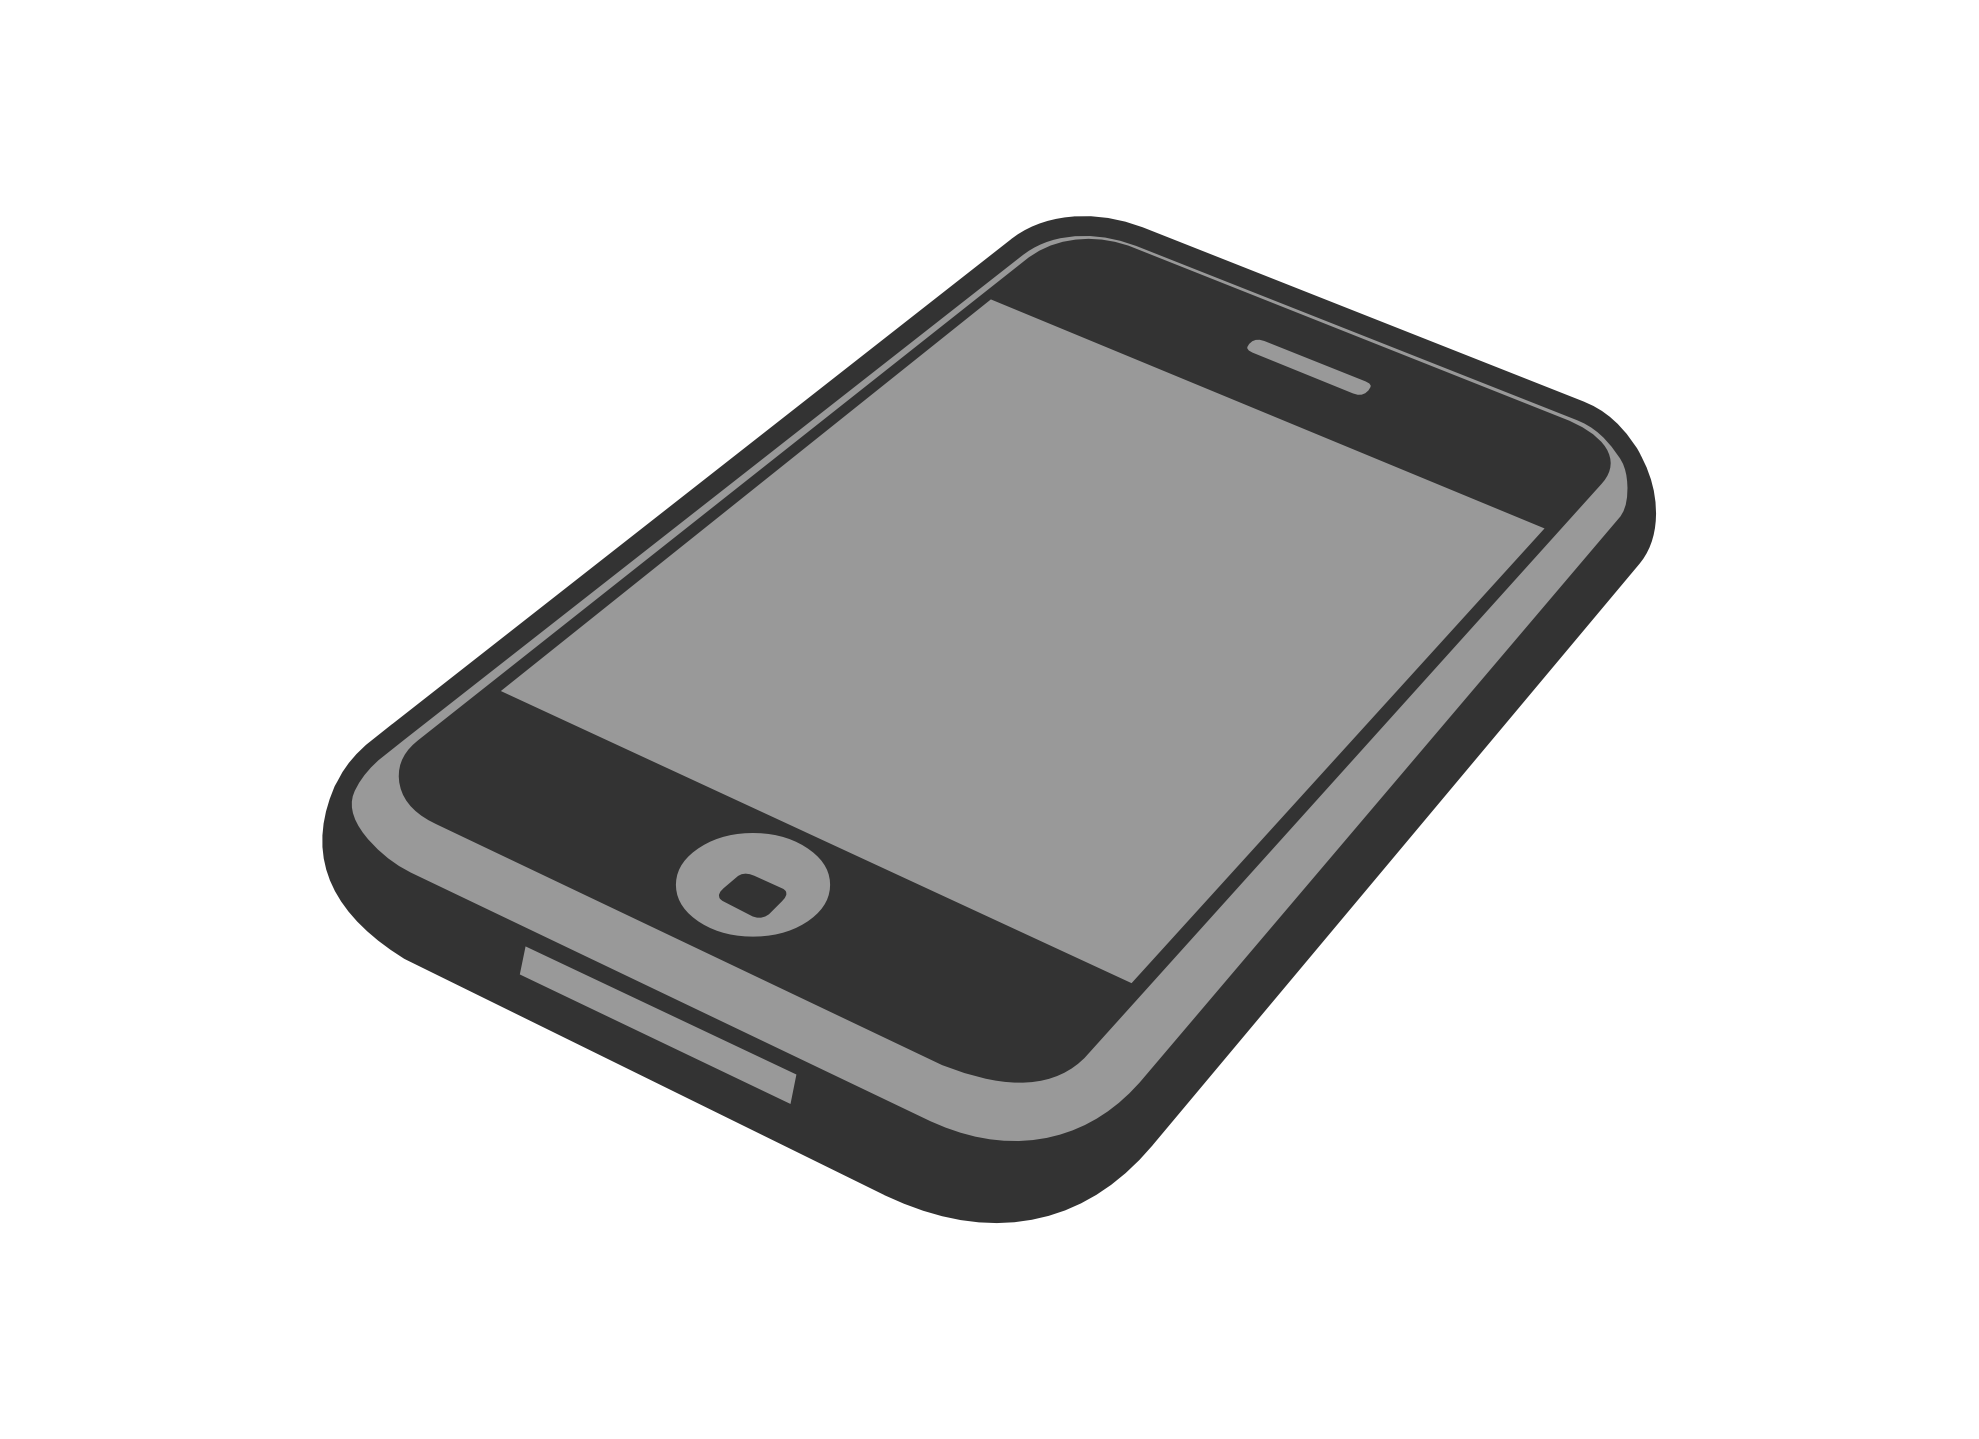 Live clipart for iphone 3gs.